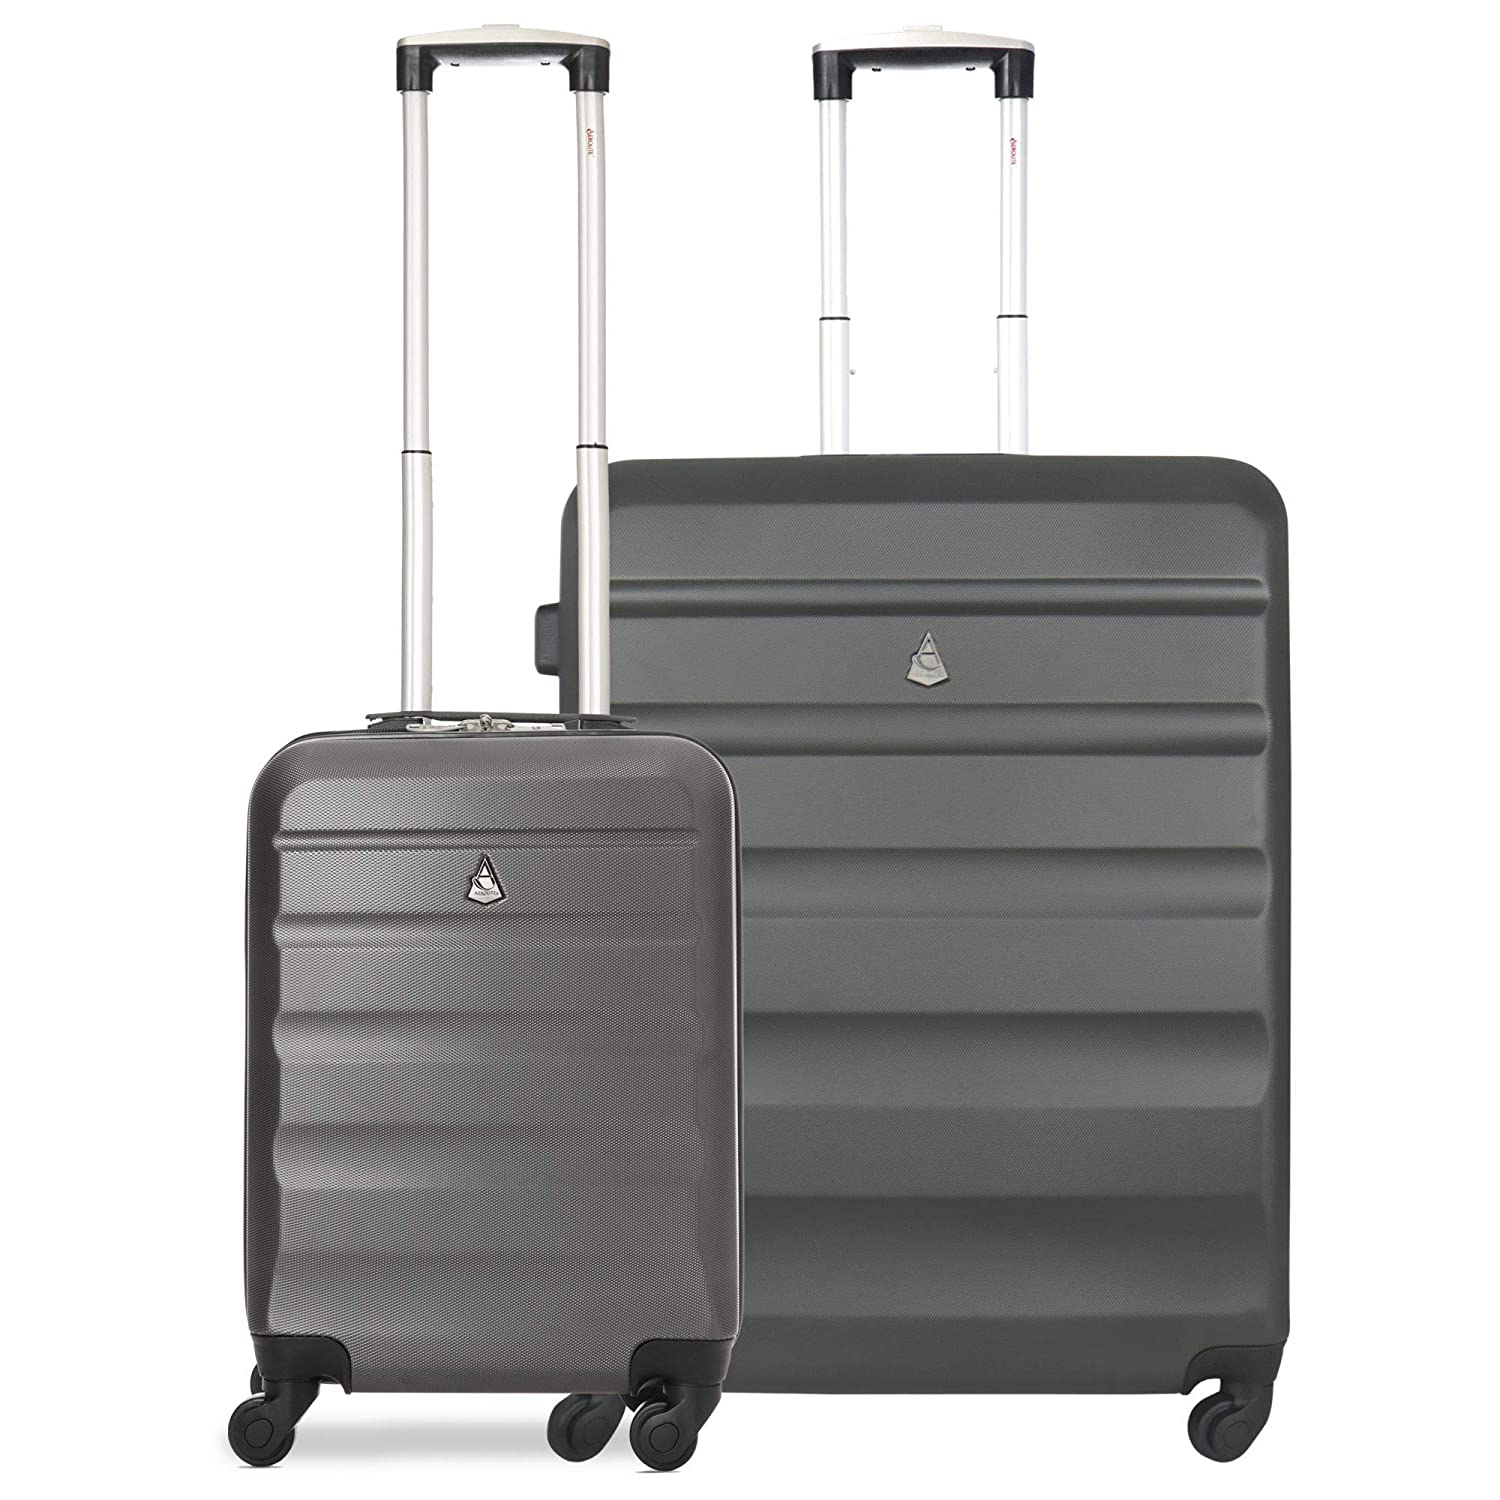 d3f6c3ed8 ... Lightweight Hard Shell 4 Wheel Travel 21in 55cm Hand Cabin Plus 25in  Medium Hold Checked Check in 2 Piece Luggage Suitcase Set Charcoal: Amazon. co.uk: ...